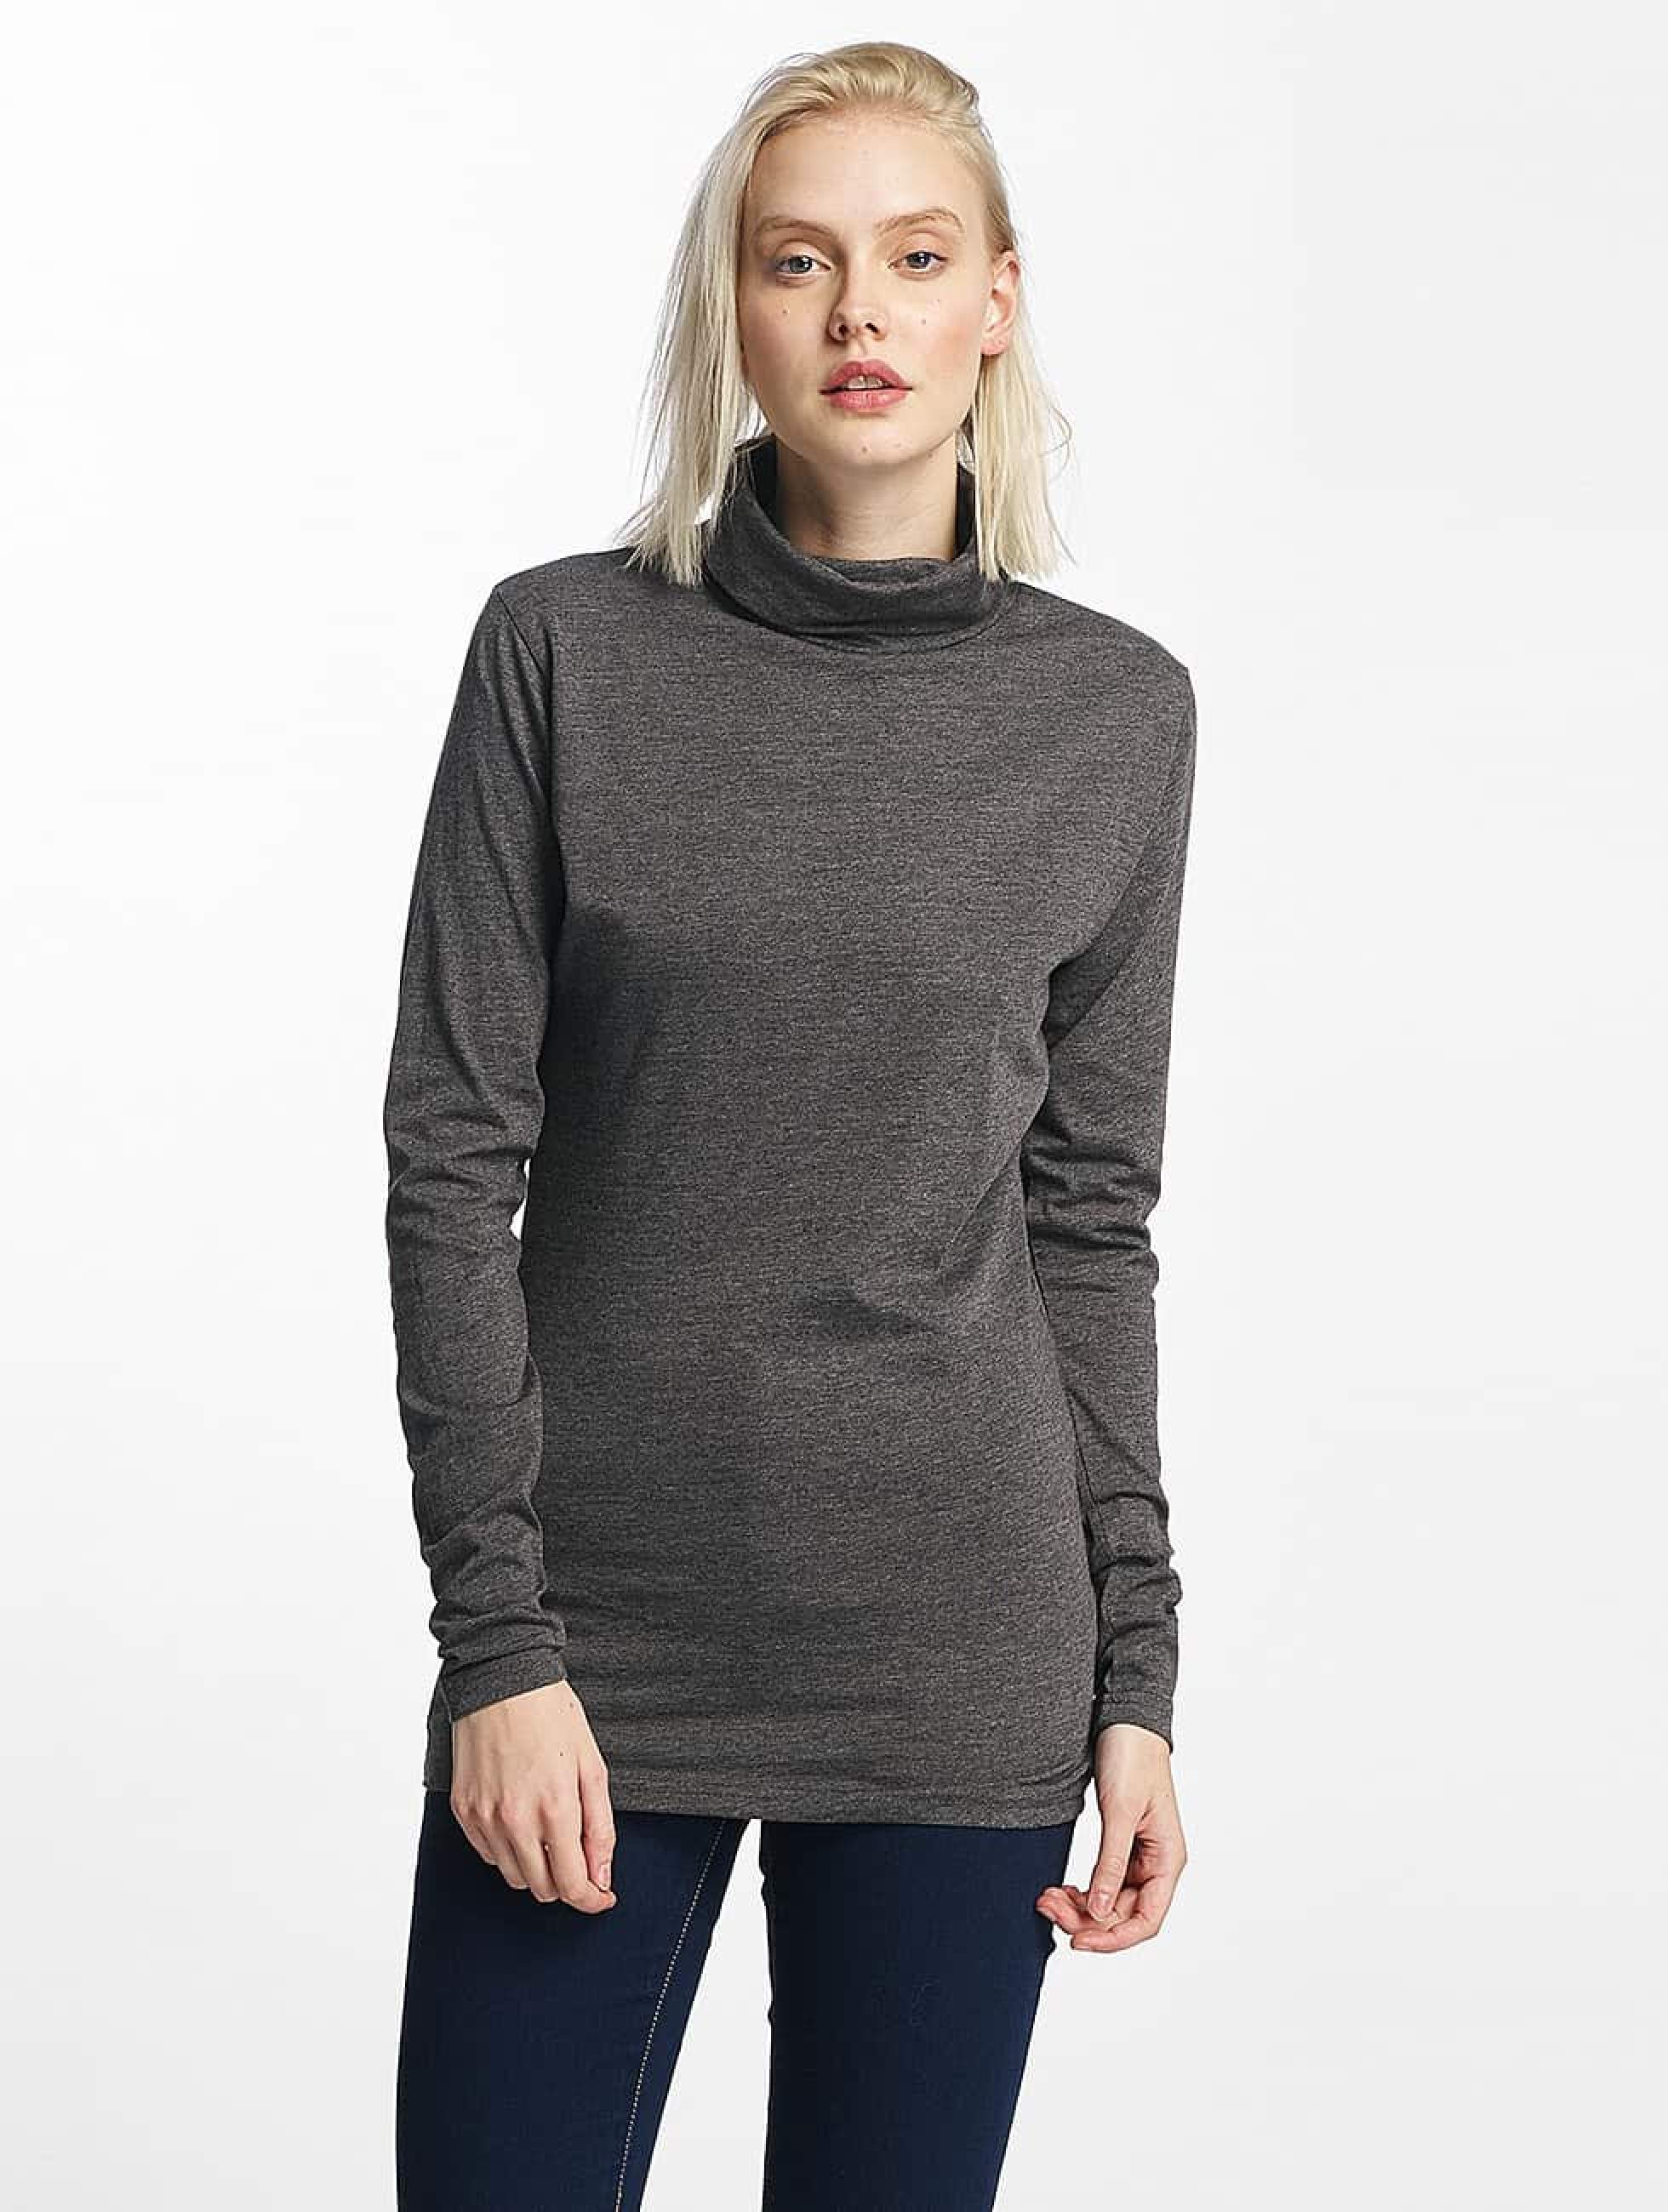 Cyprime / Longsleeve Samarium in grey XL